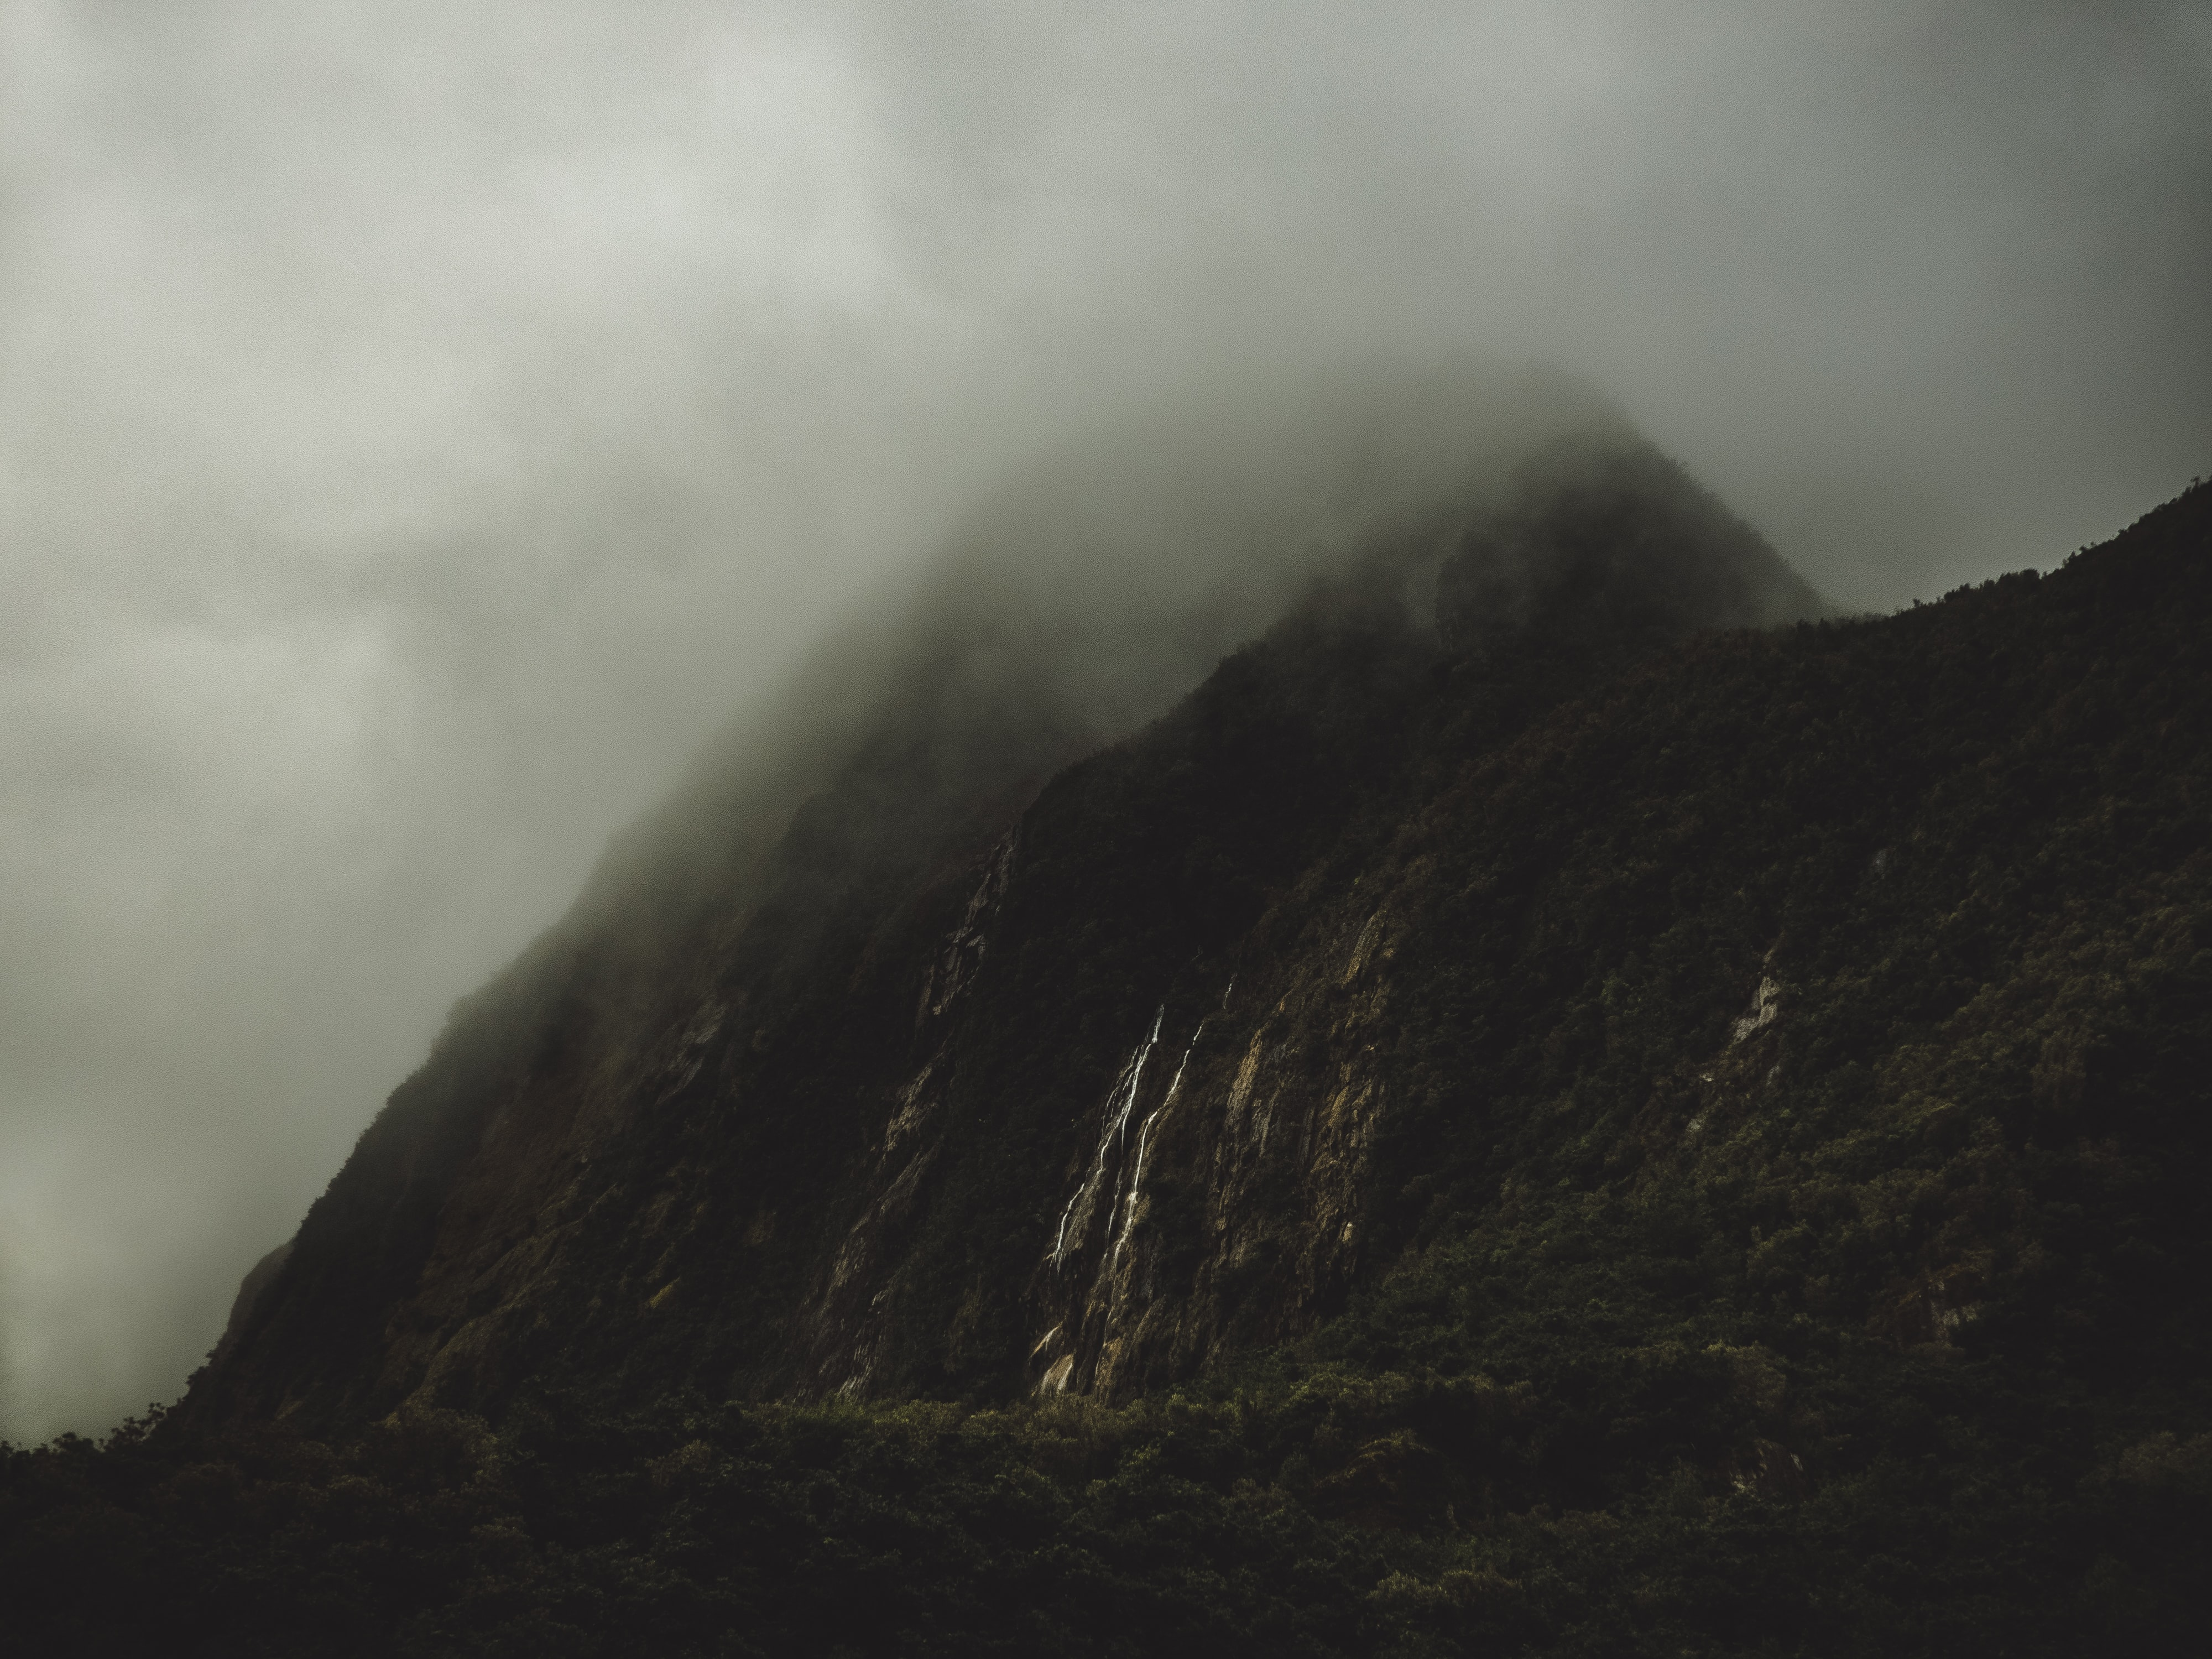 A tall mountain peak with a wooded slope shrouded in dense mist